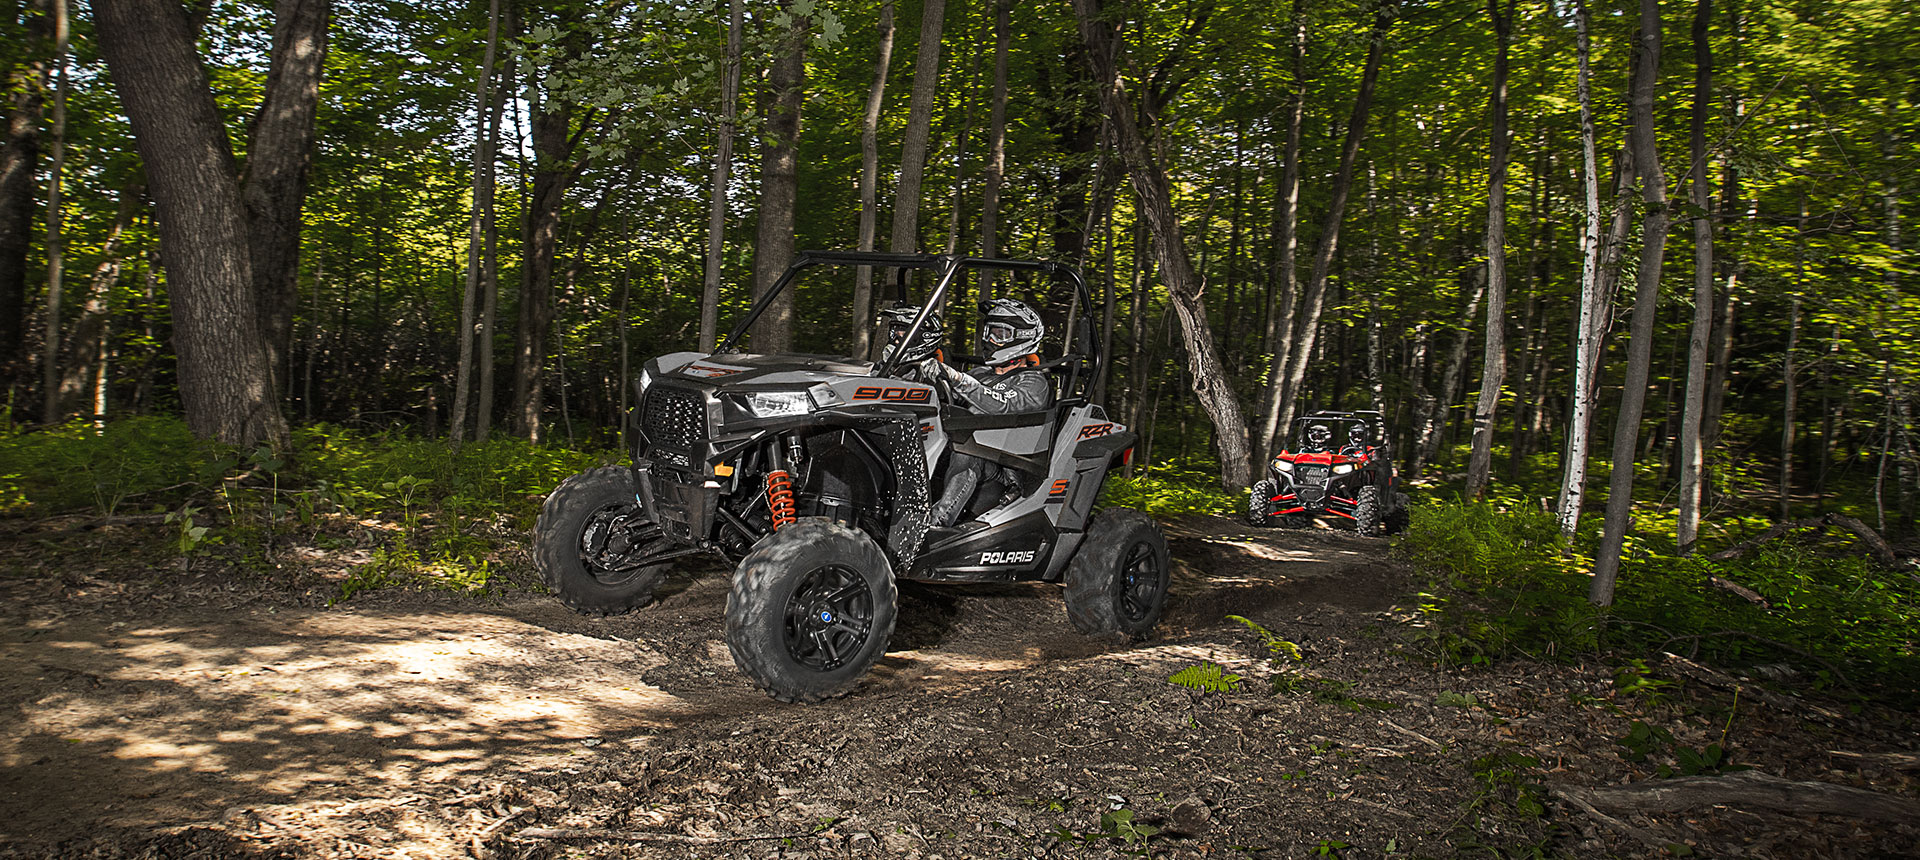 2019 Polaris RZR S 900 in Rapid City, South Dakota - Photo 8